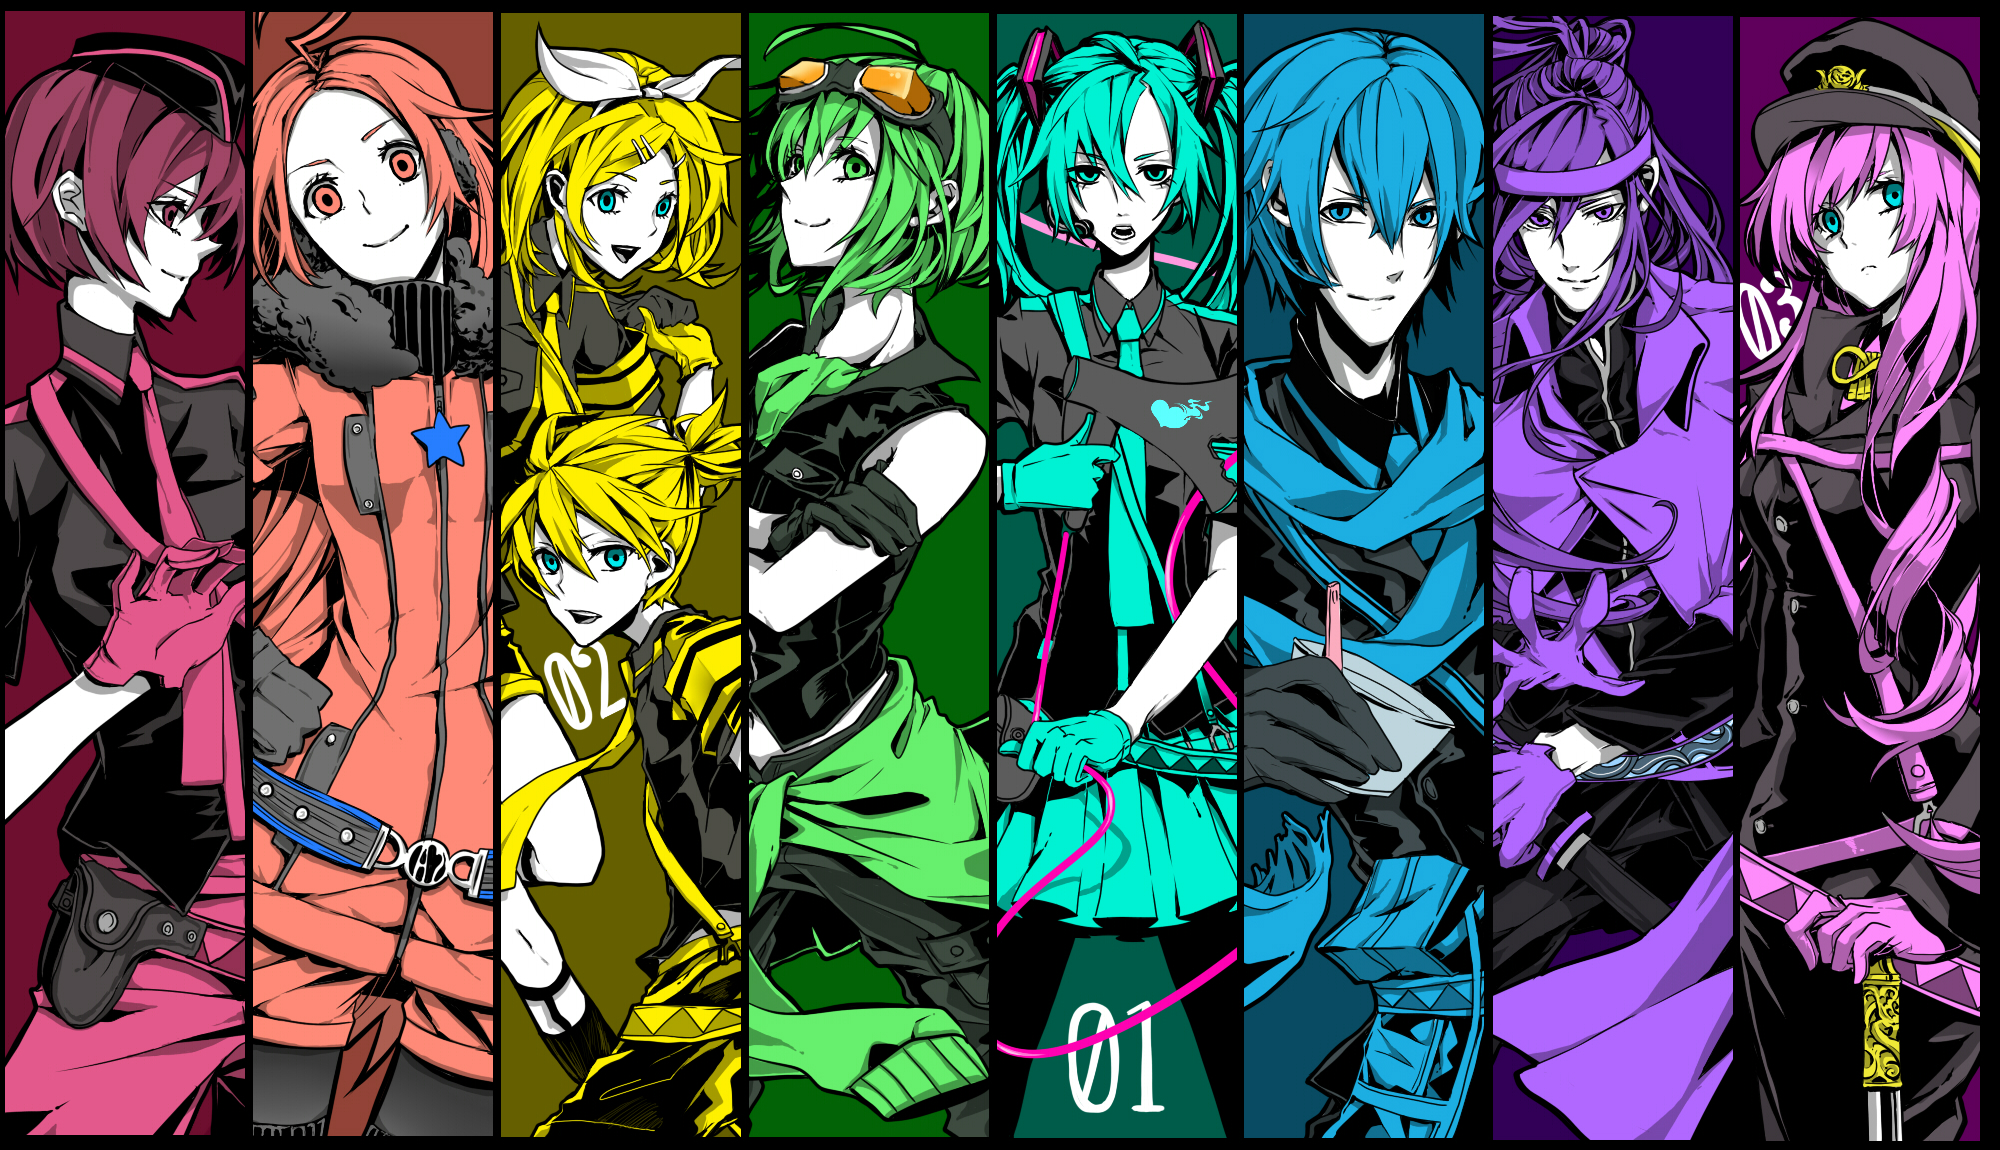 Vocaloid HD Wallpaper | Background Image | 2000x1150 | ID:768140 - Wallpaper Abyss